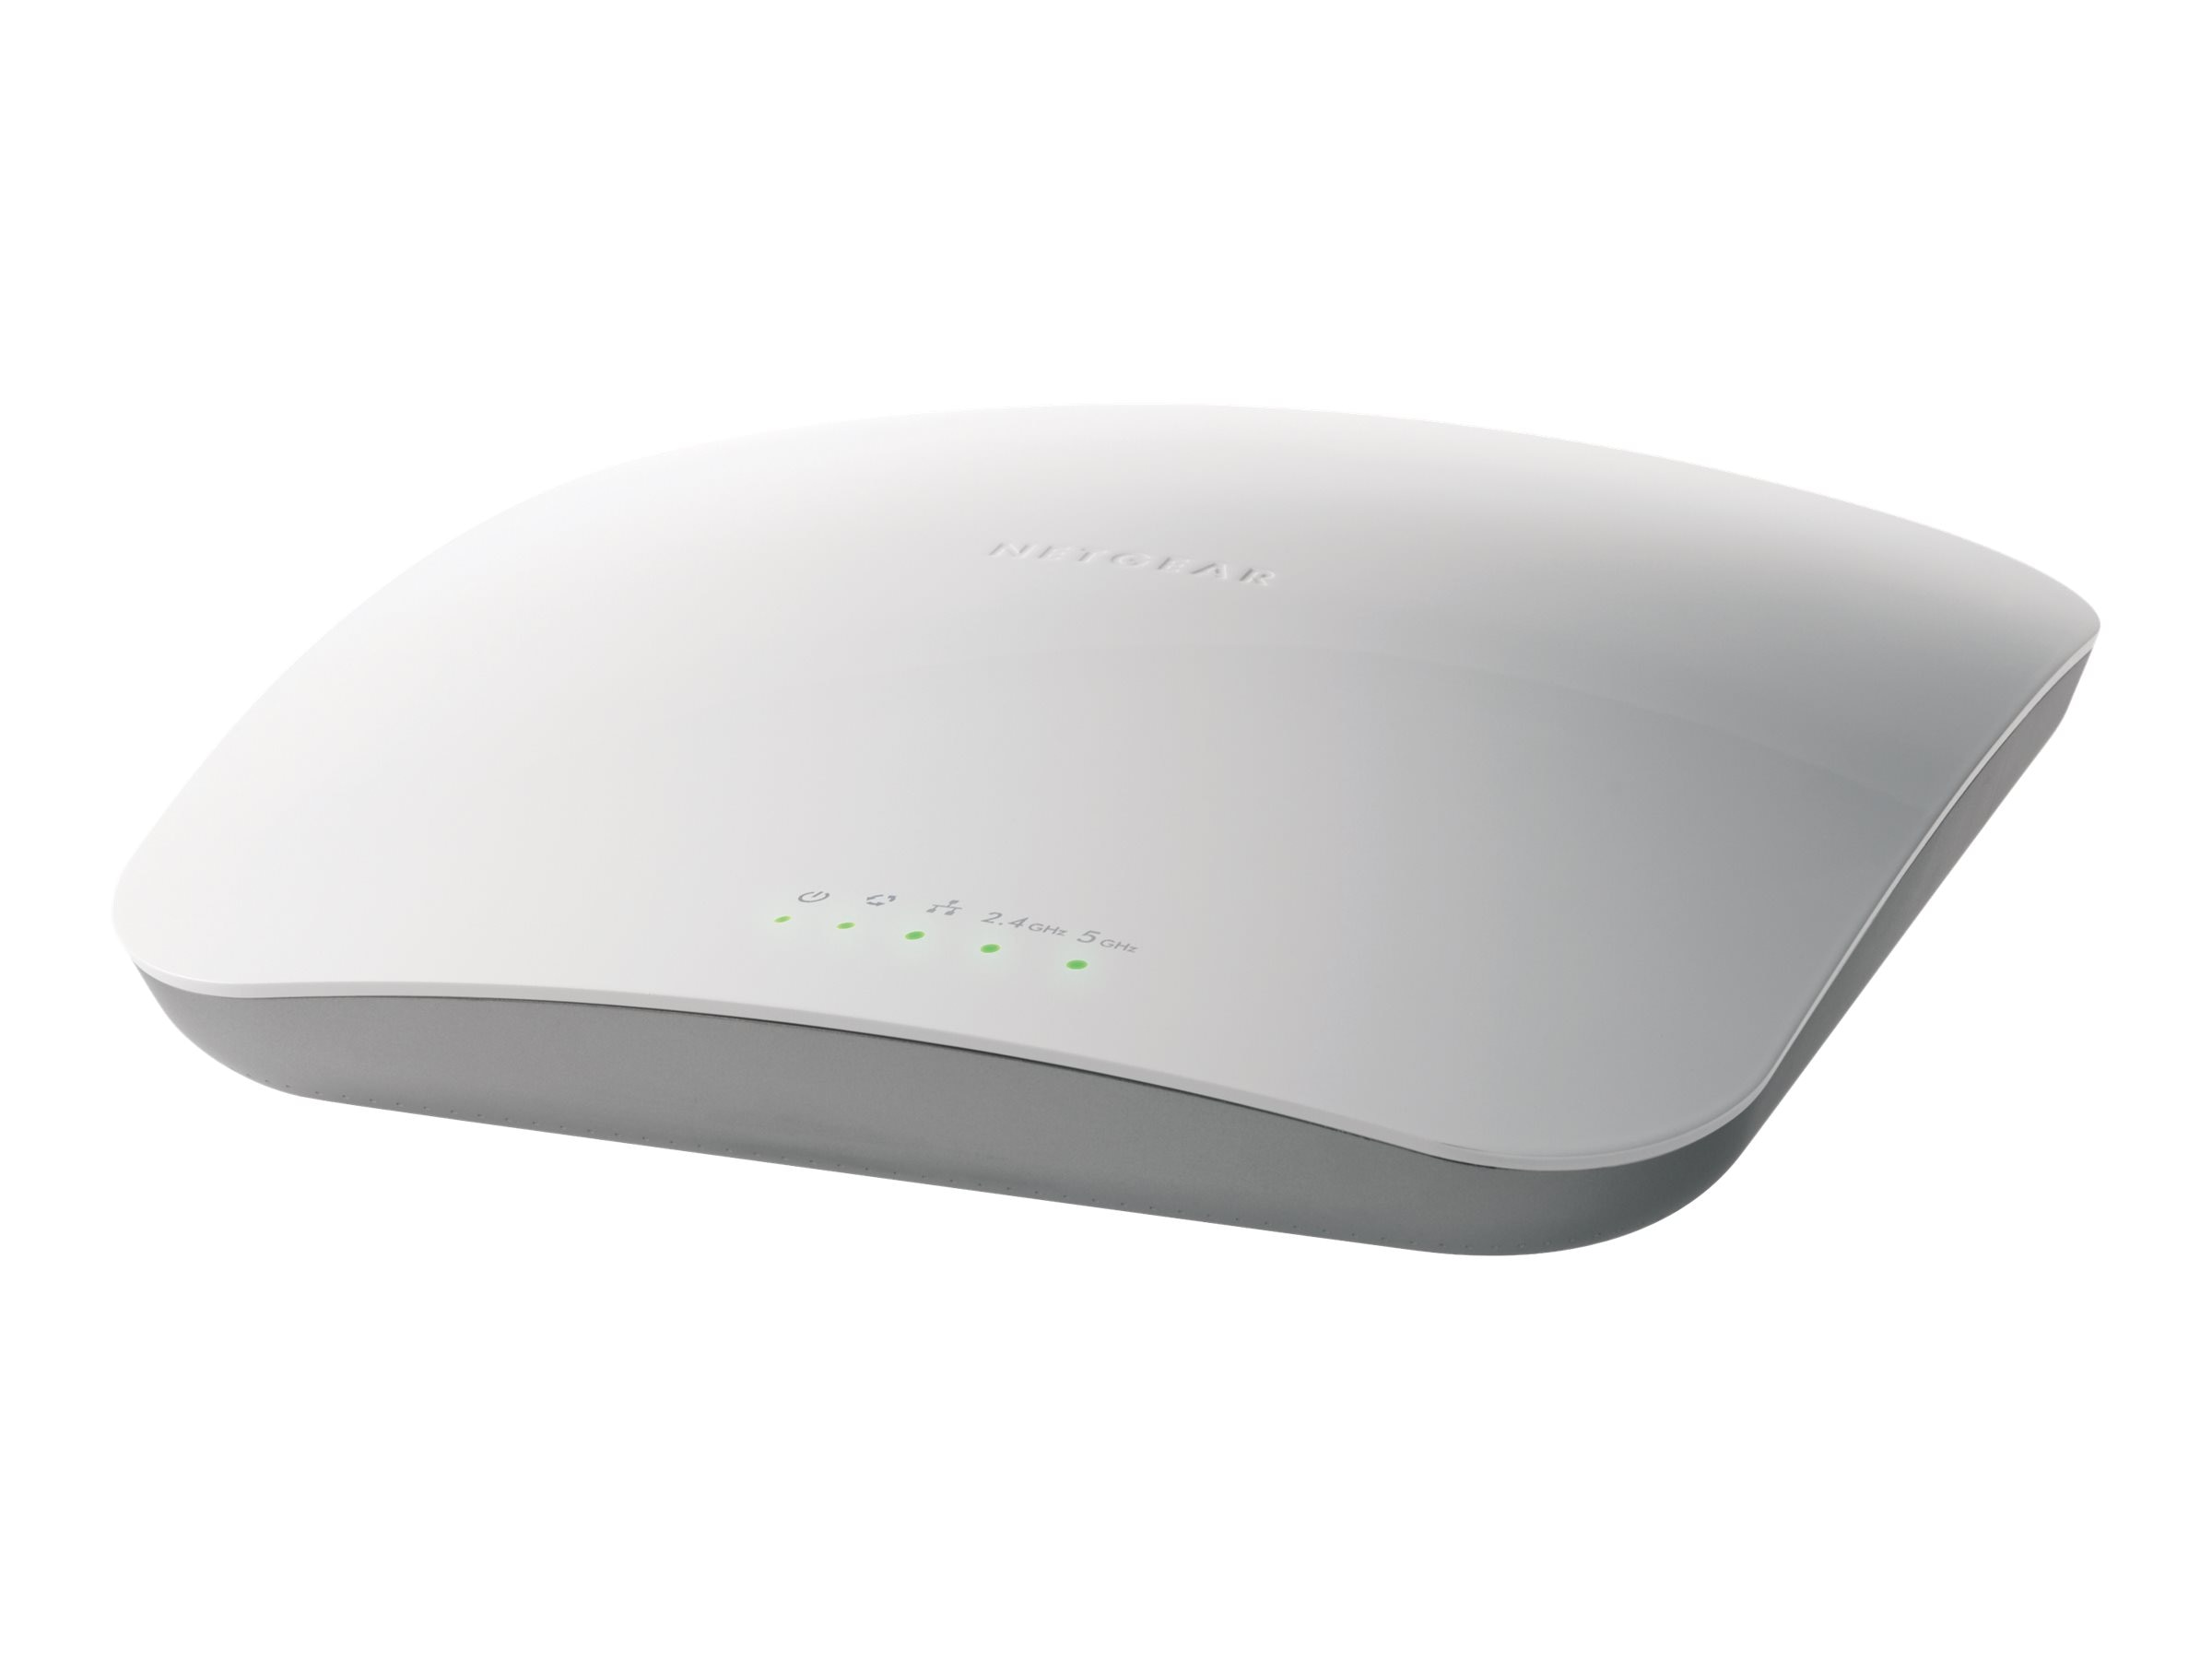 Netgear ProSafe Dual Band Wireless-N Access Point 802.11 a b g n, WNDAP360-100NAS